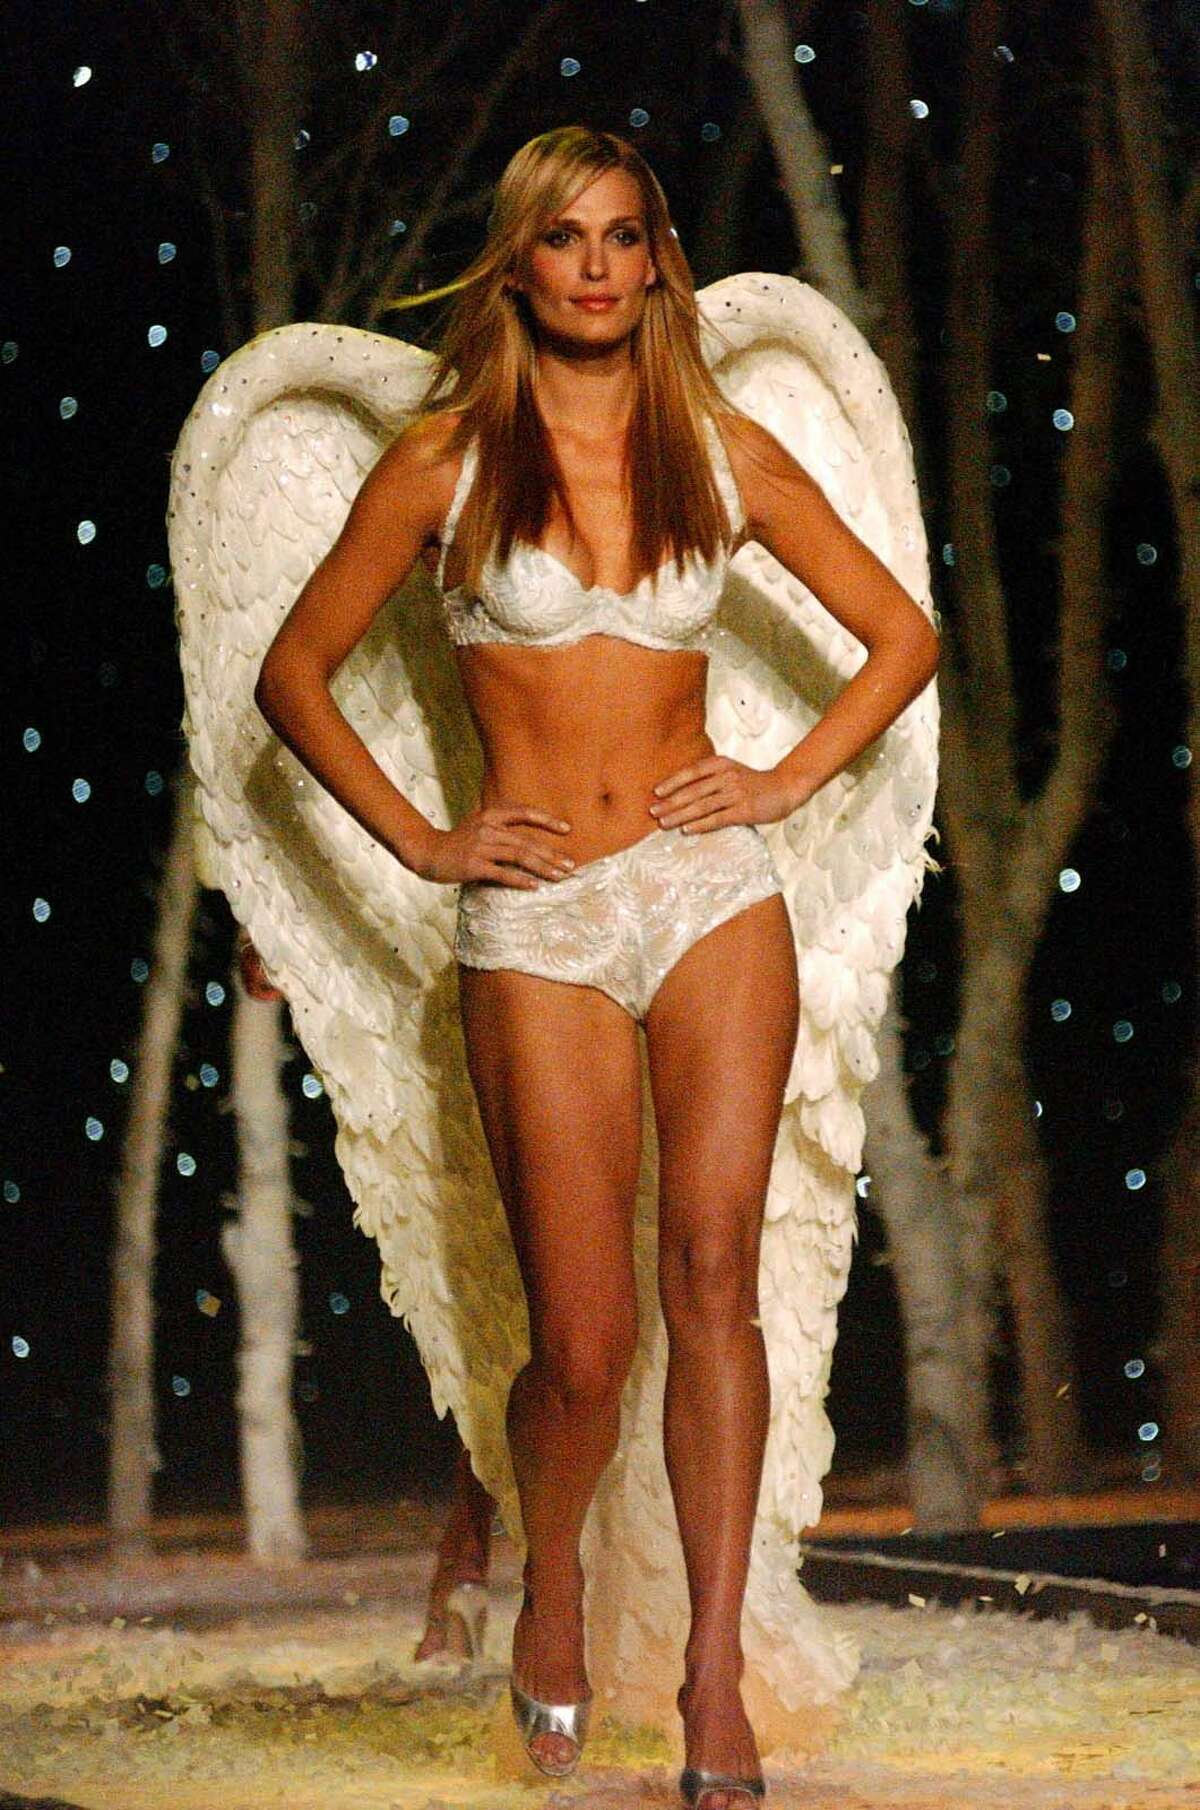 2001: Molly Sims wears a set of angel wings as she models fashions in the Victoria's Secret show in New York.